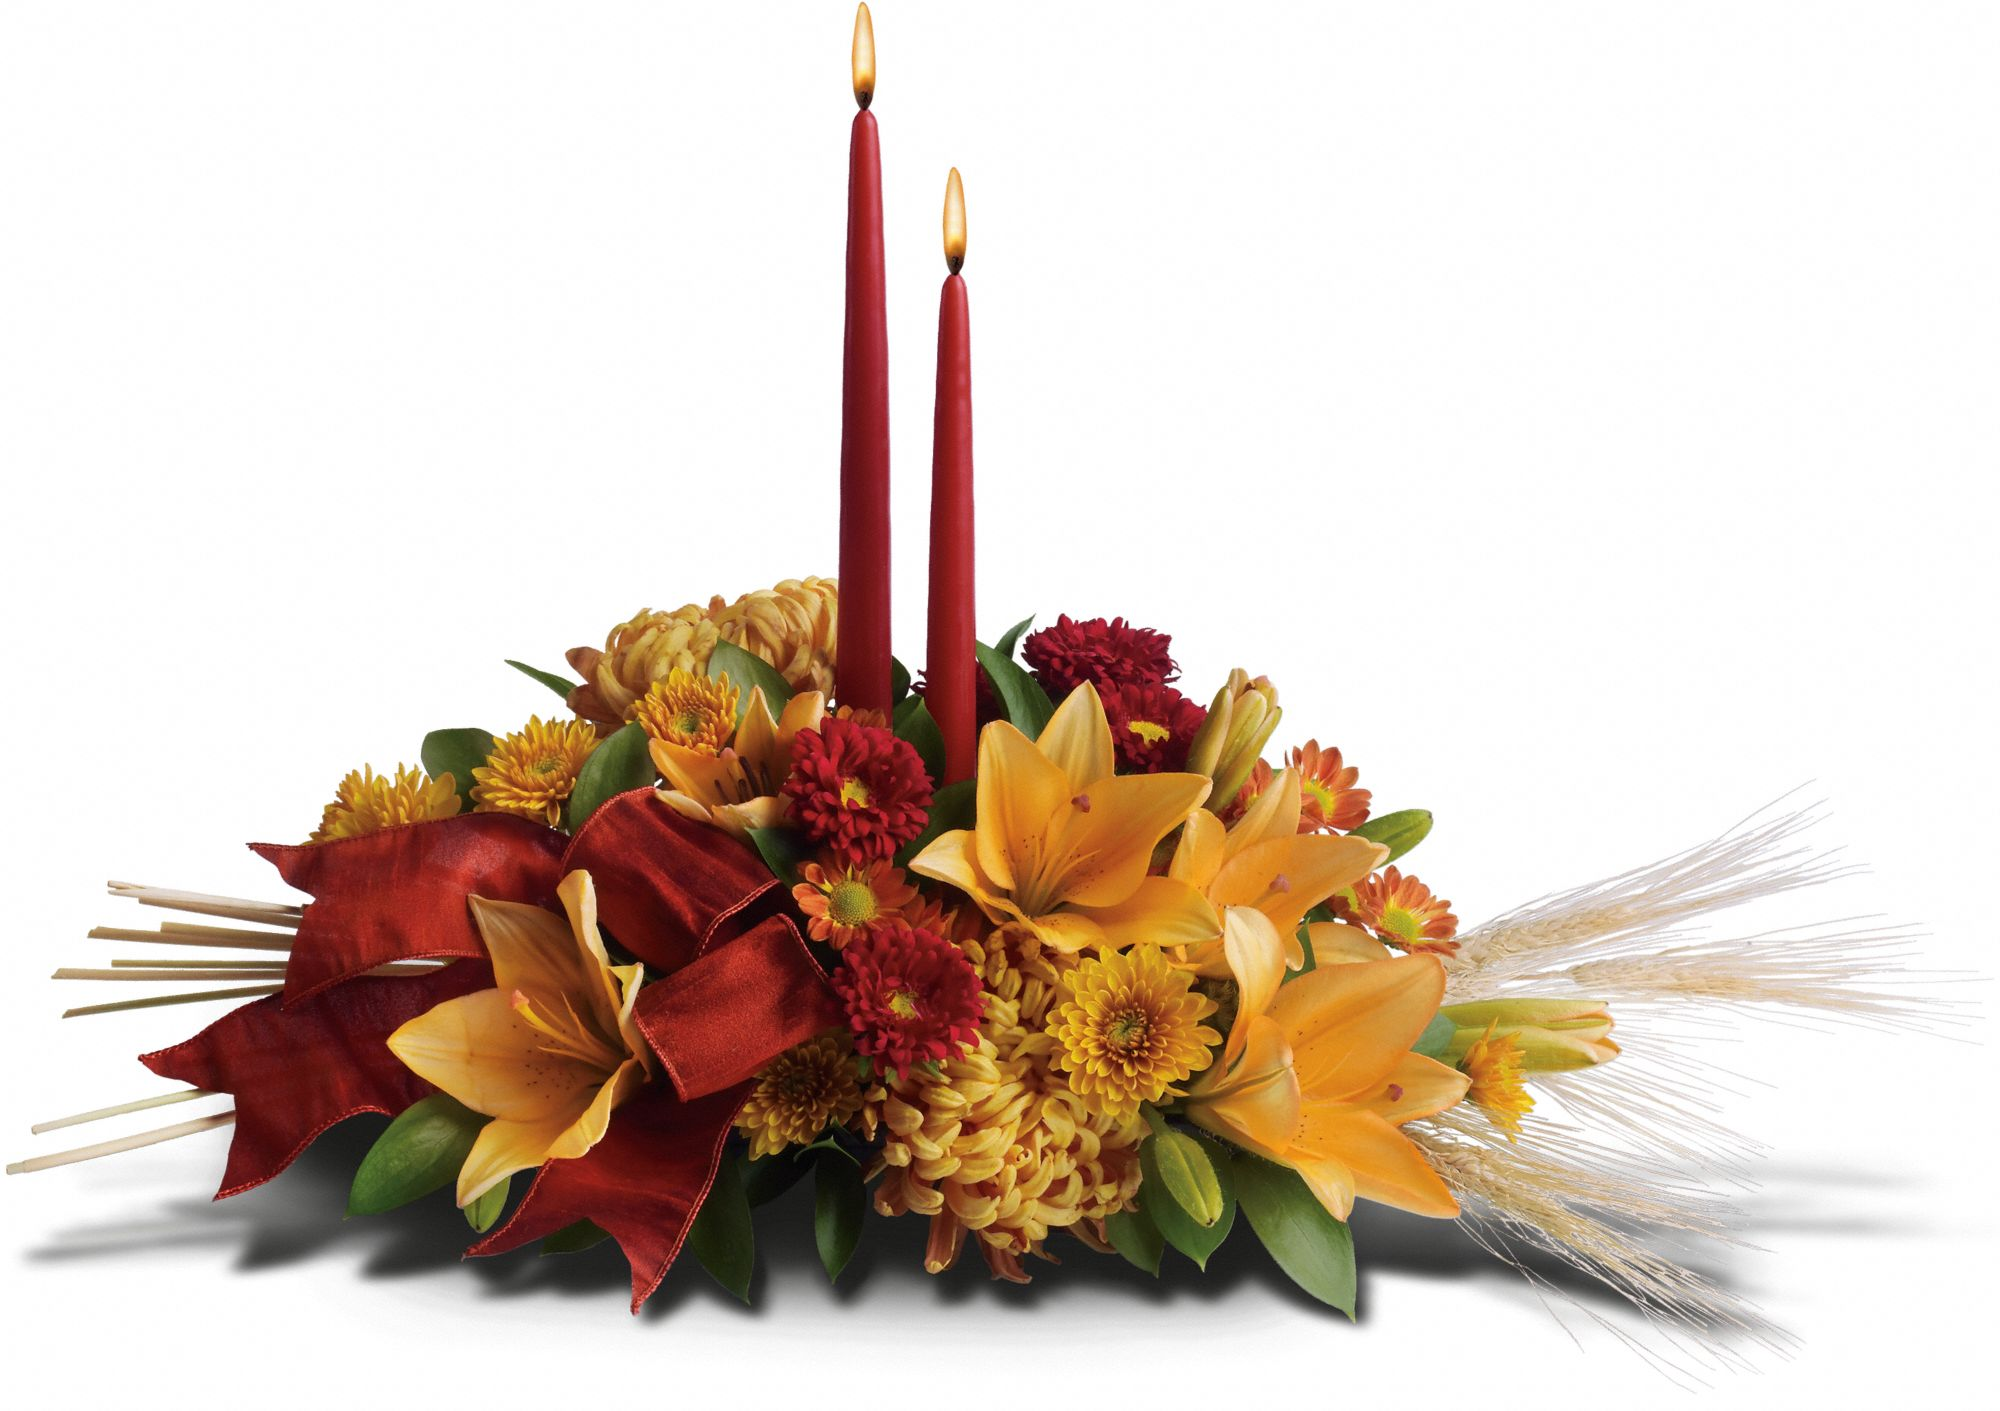 Graceful Glow Fall Centerpiece with candles